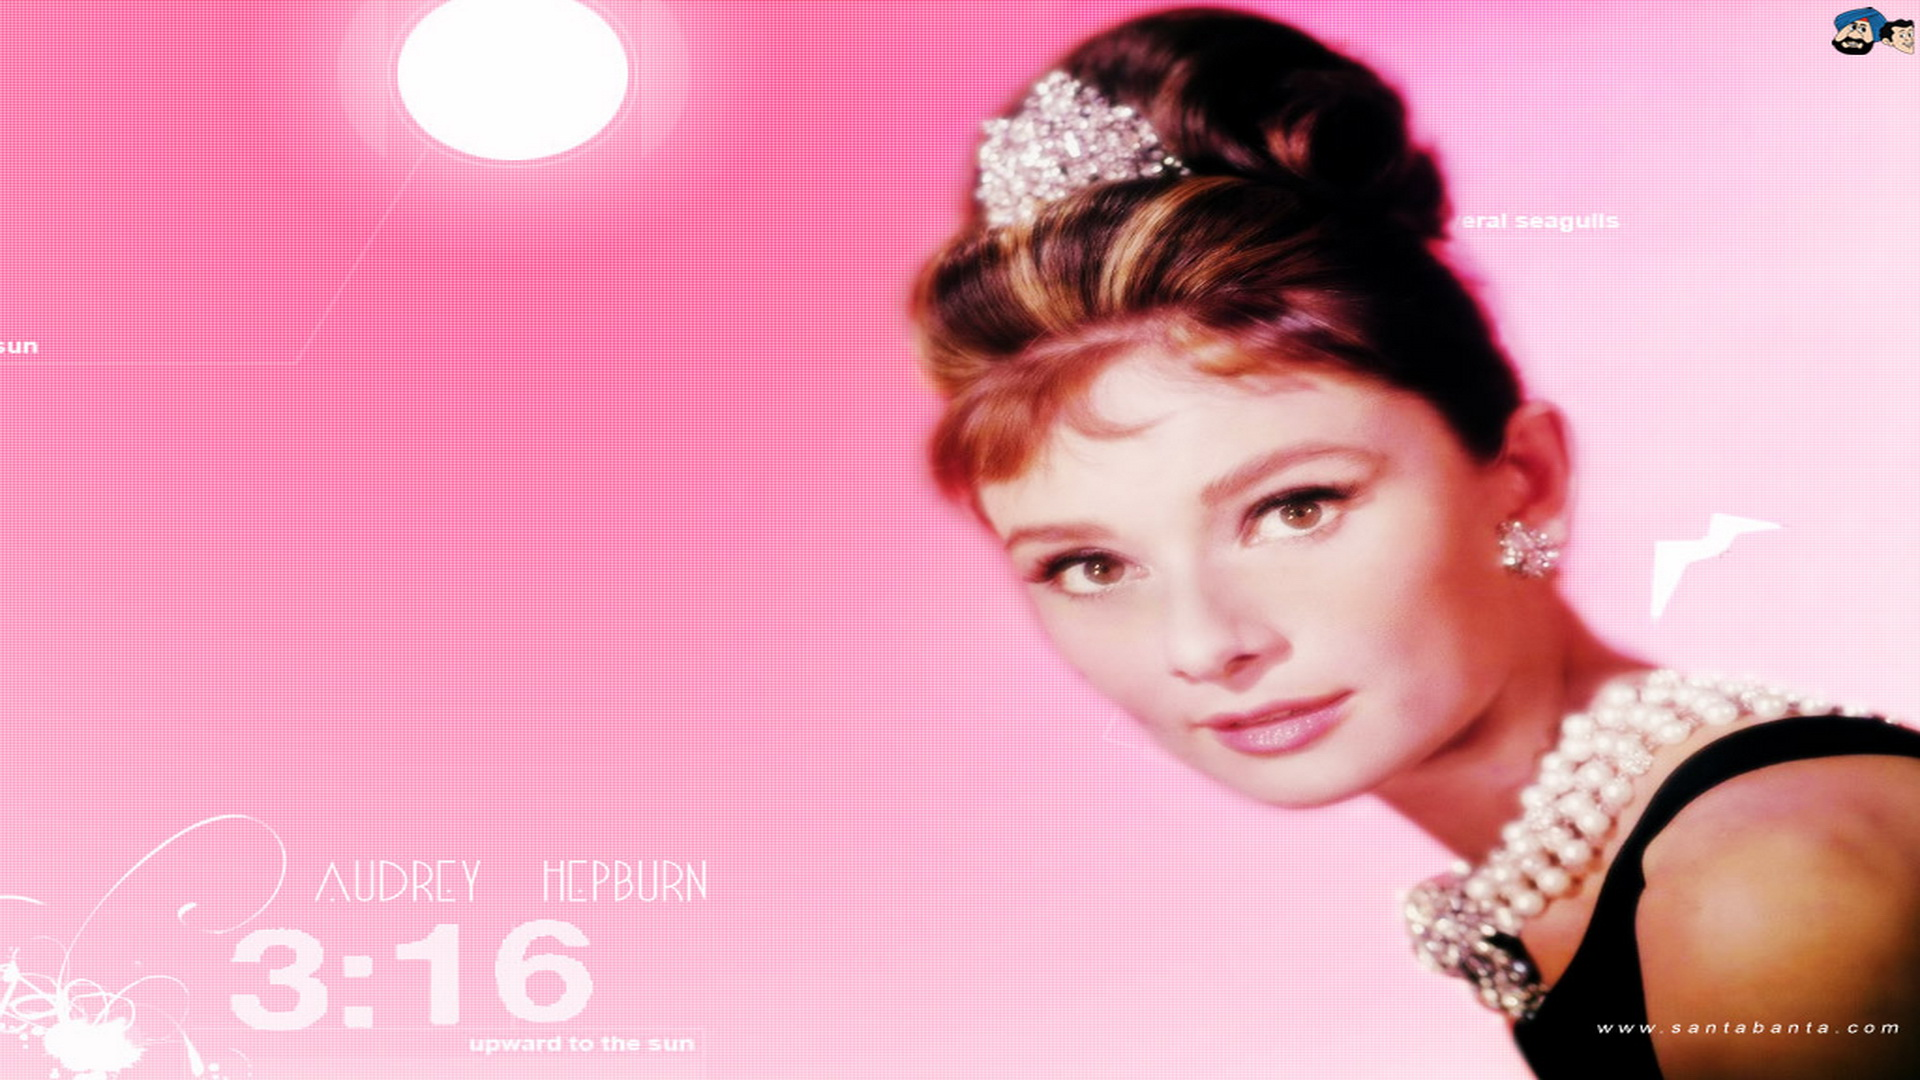 Audrey Hepburn Wallpapers 22 HD Desktop Wallpapers 1920x1080